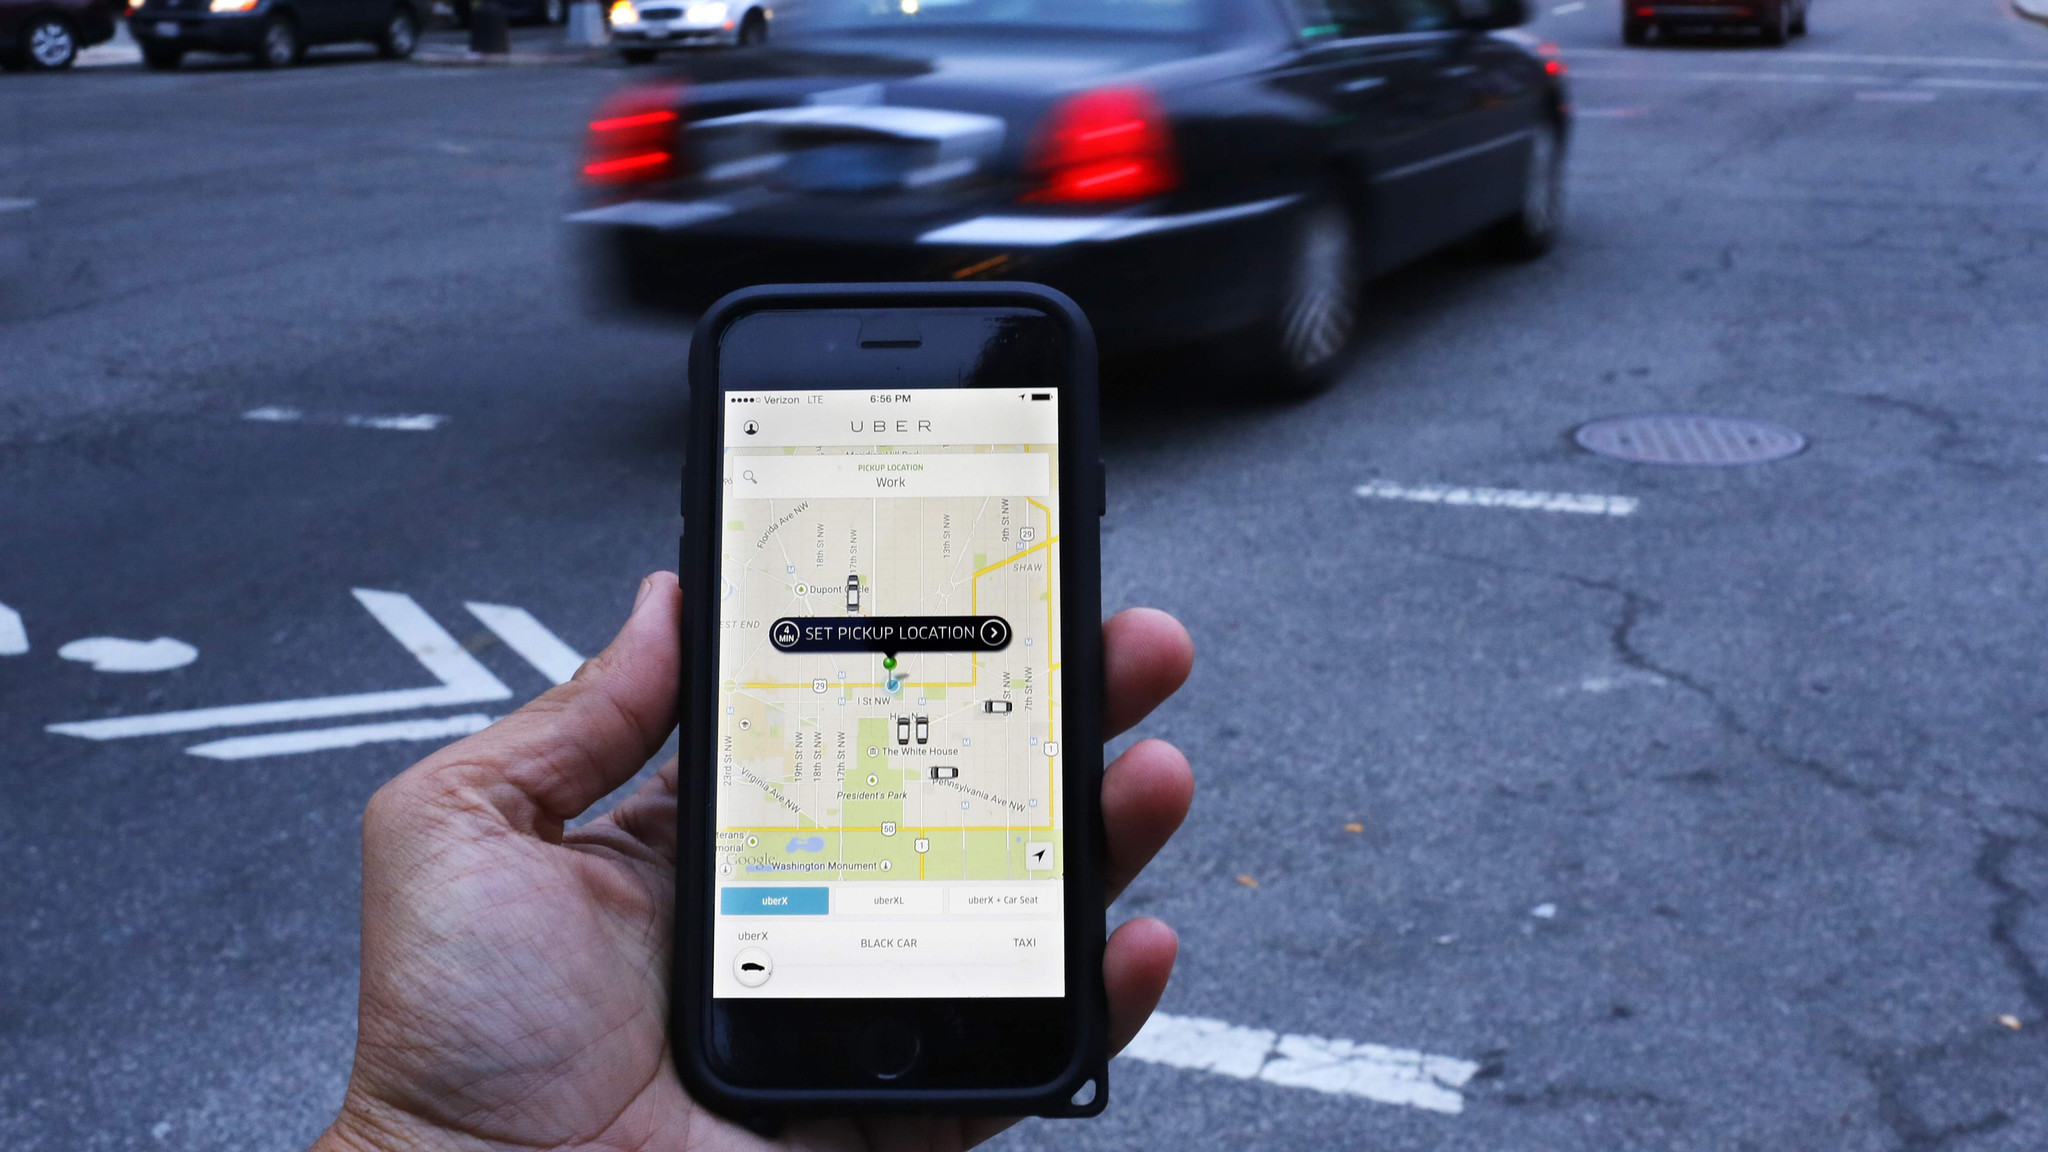 An Uber user in Washington, D.C., awaits his ride in March 2015.